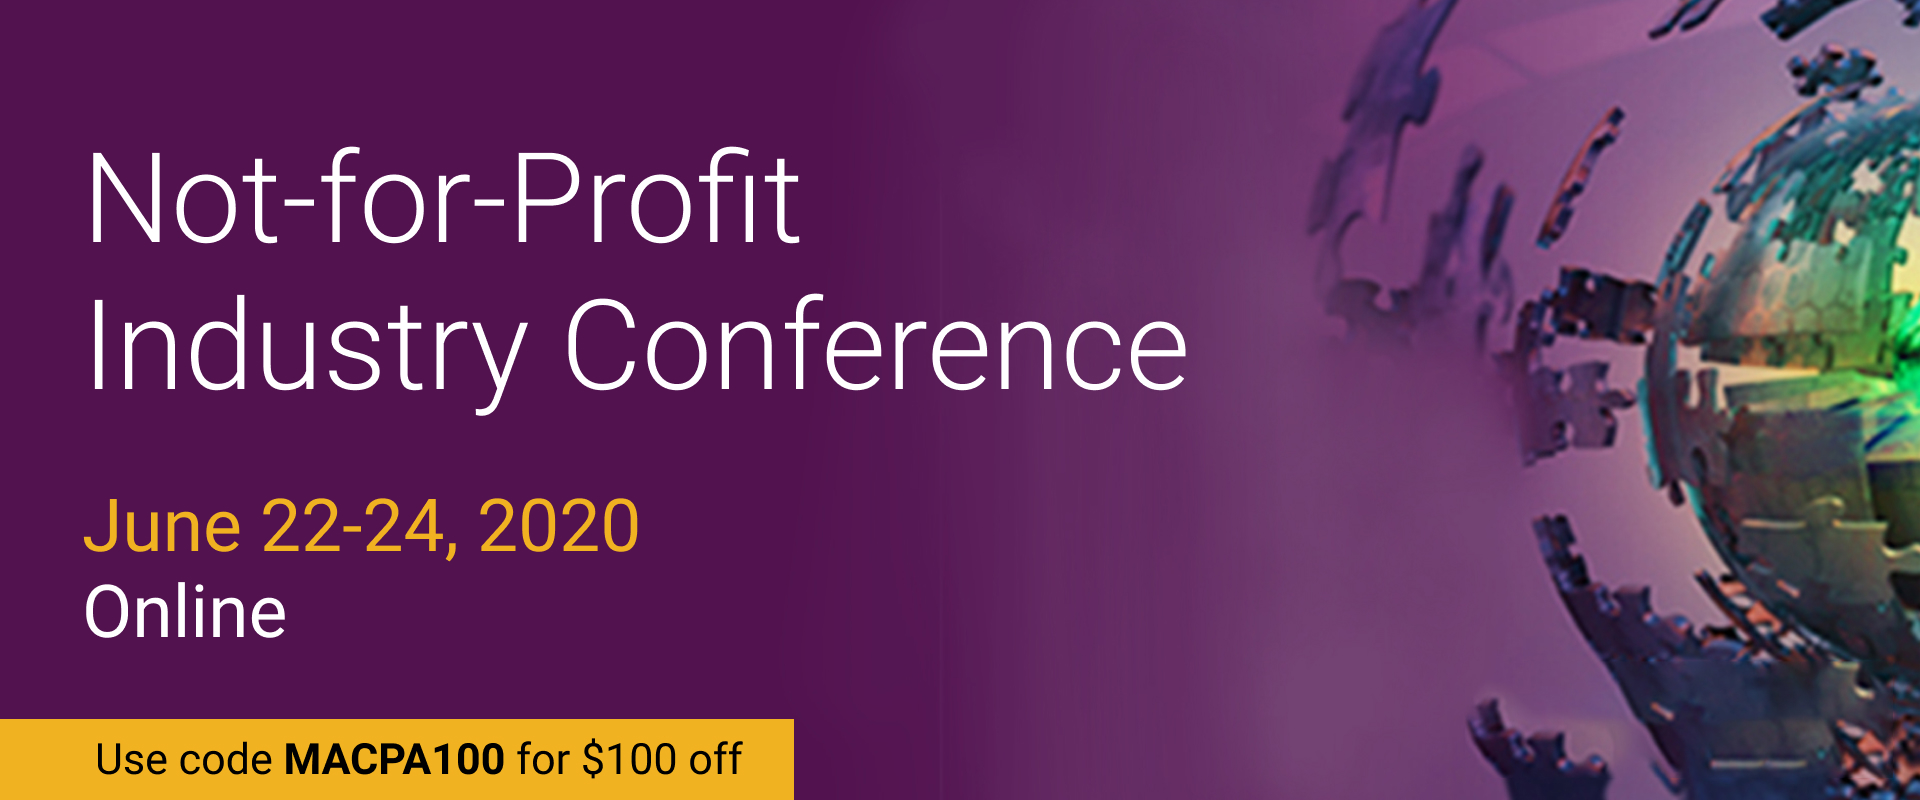 AICPA's Not-for-Profit Industry Conference